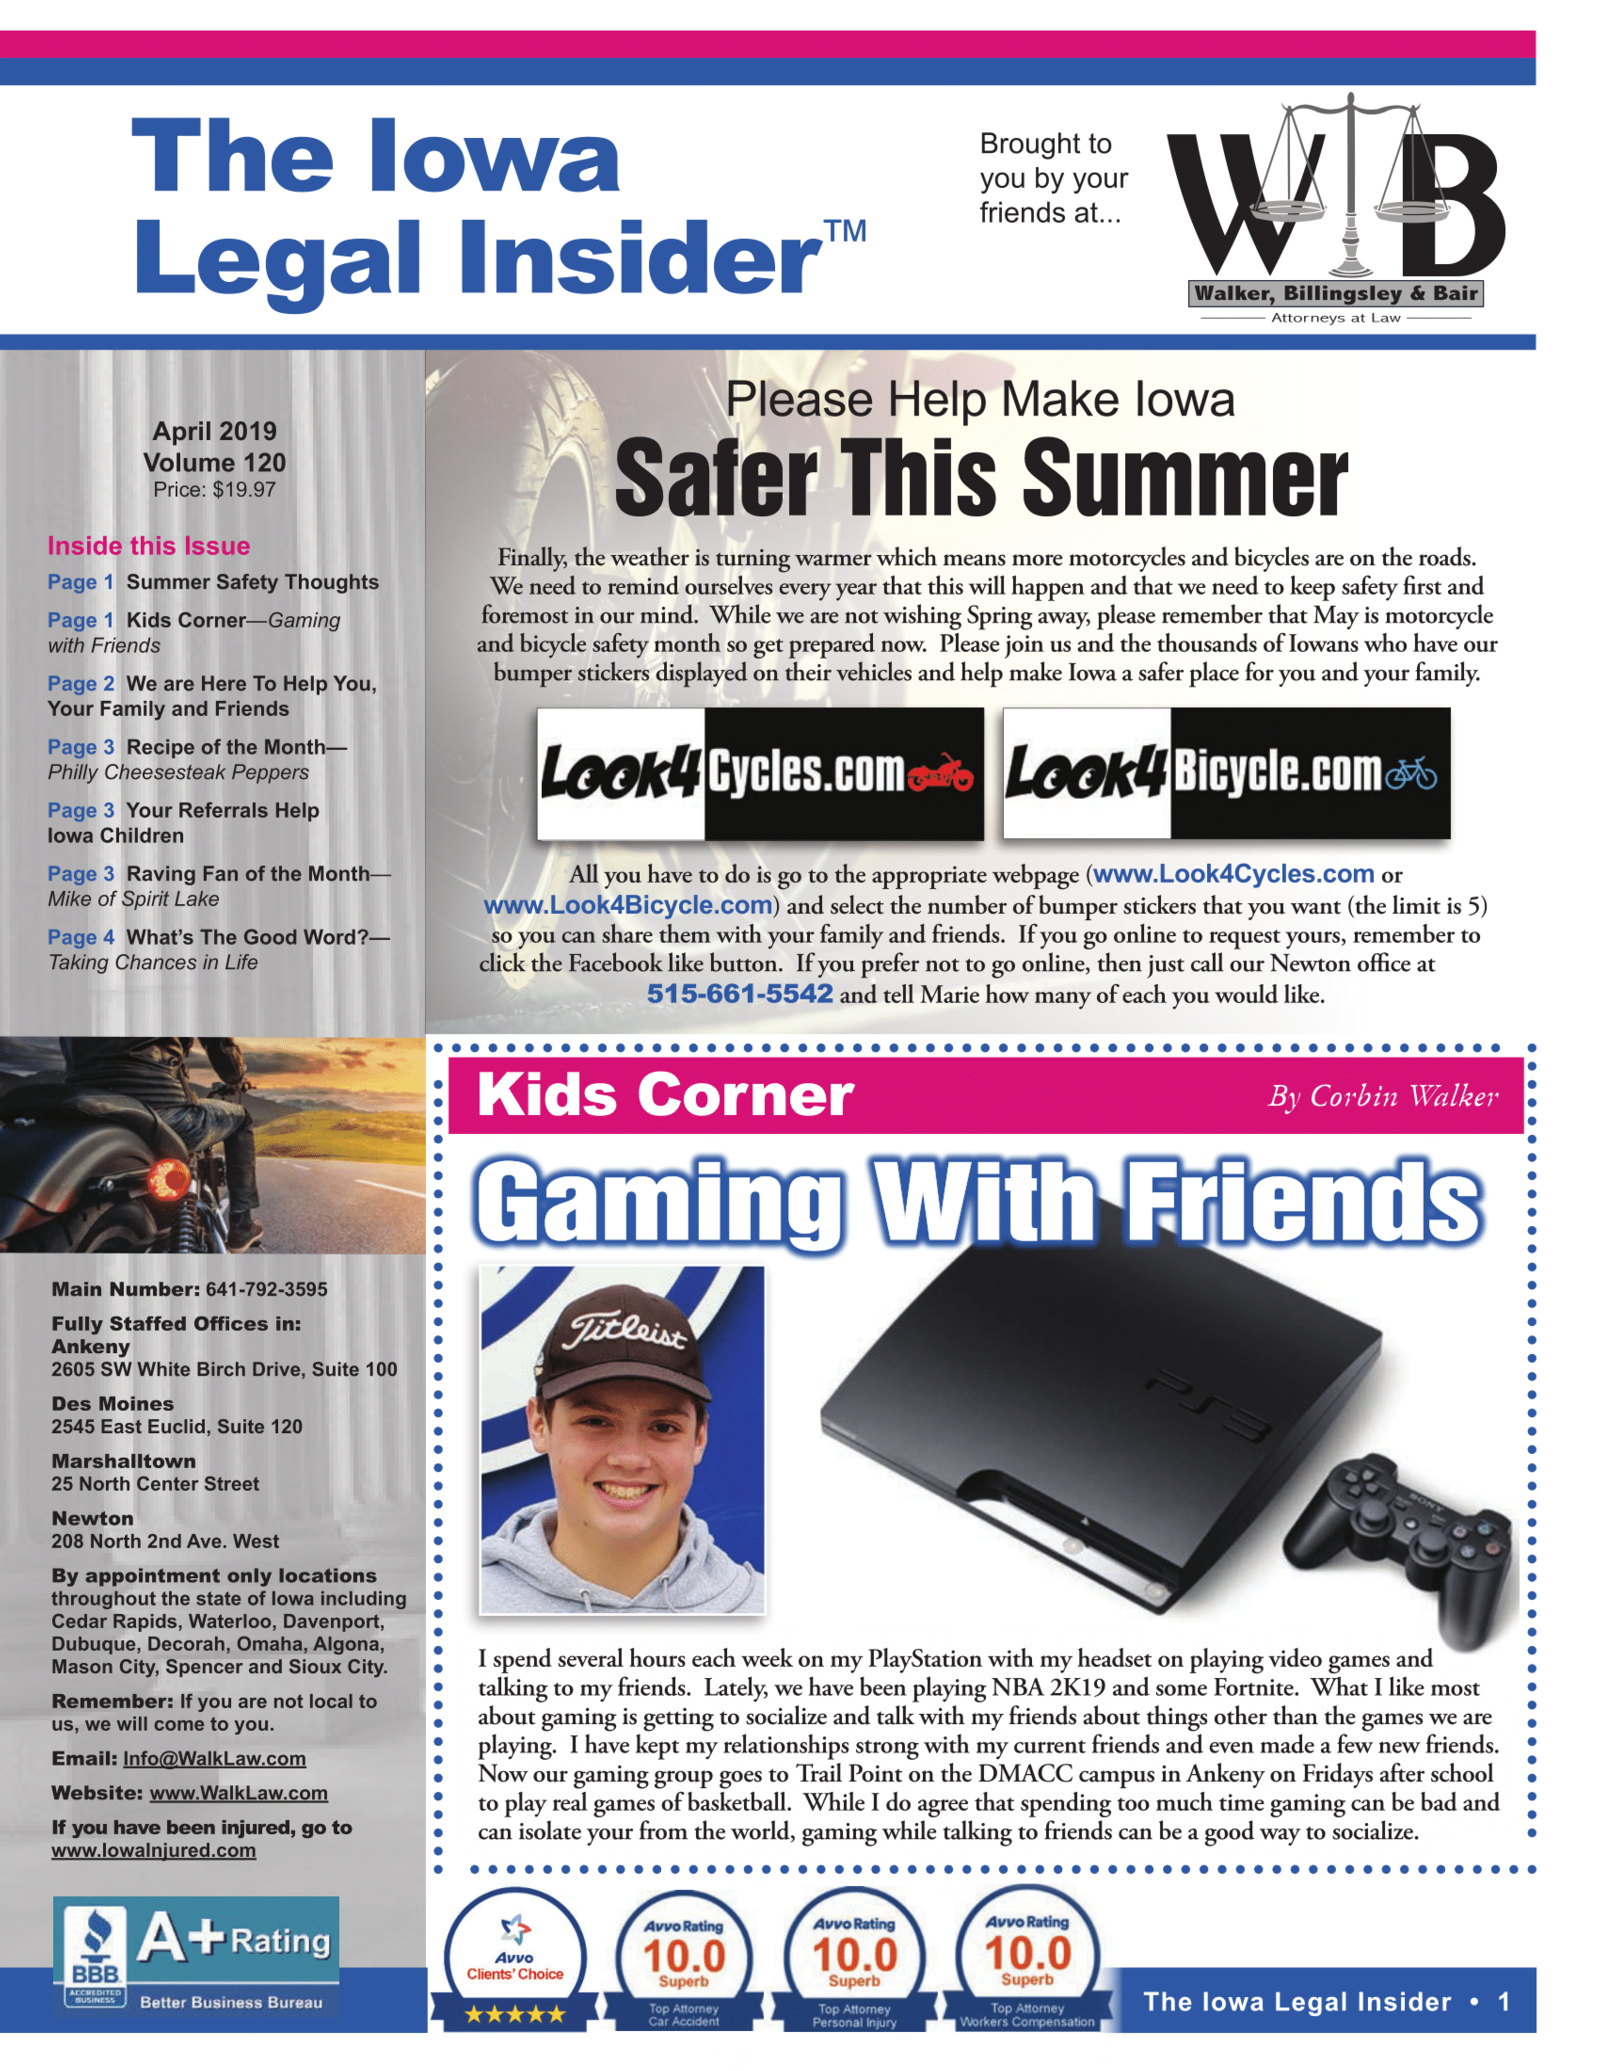 The iowa legal insider stay safe this summr riding and gaming with friends